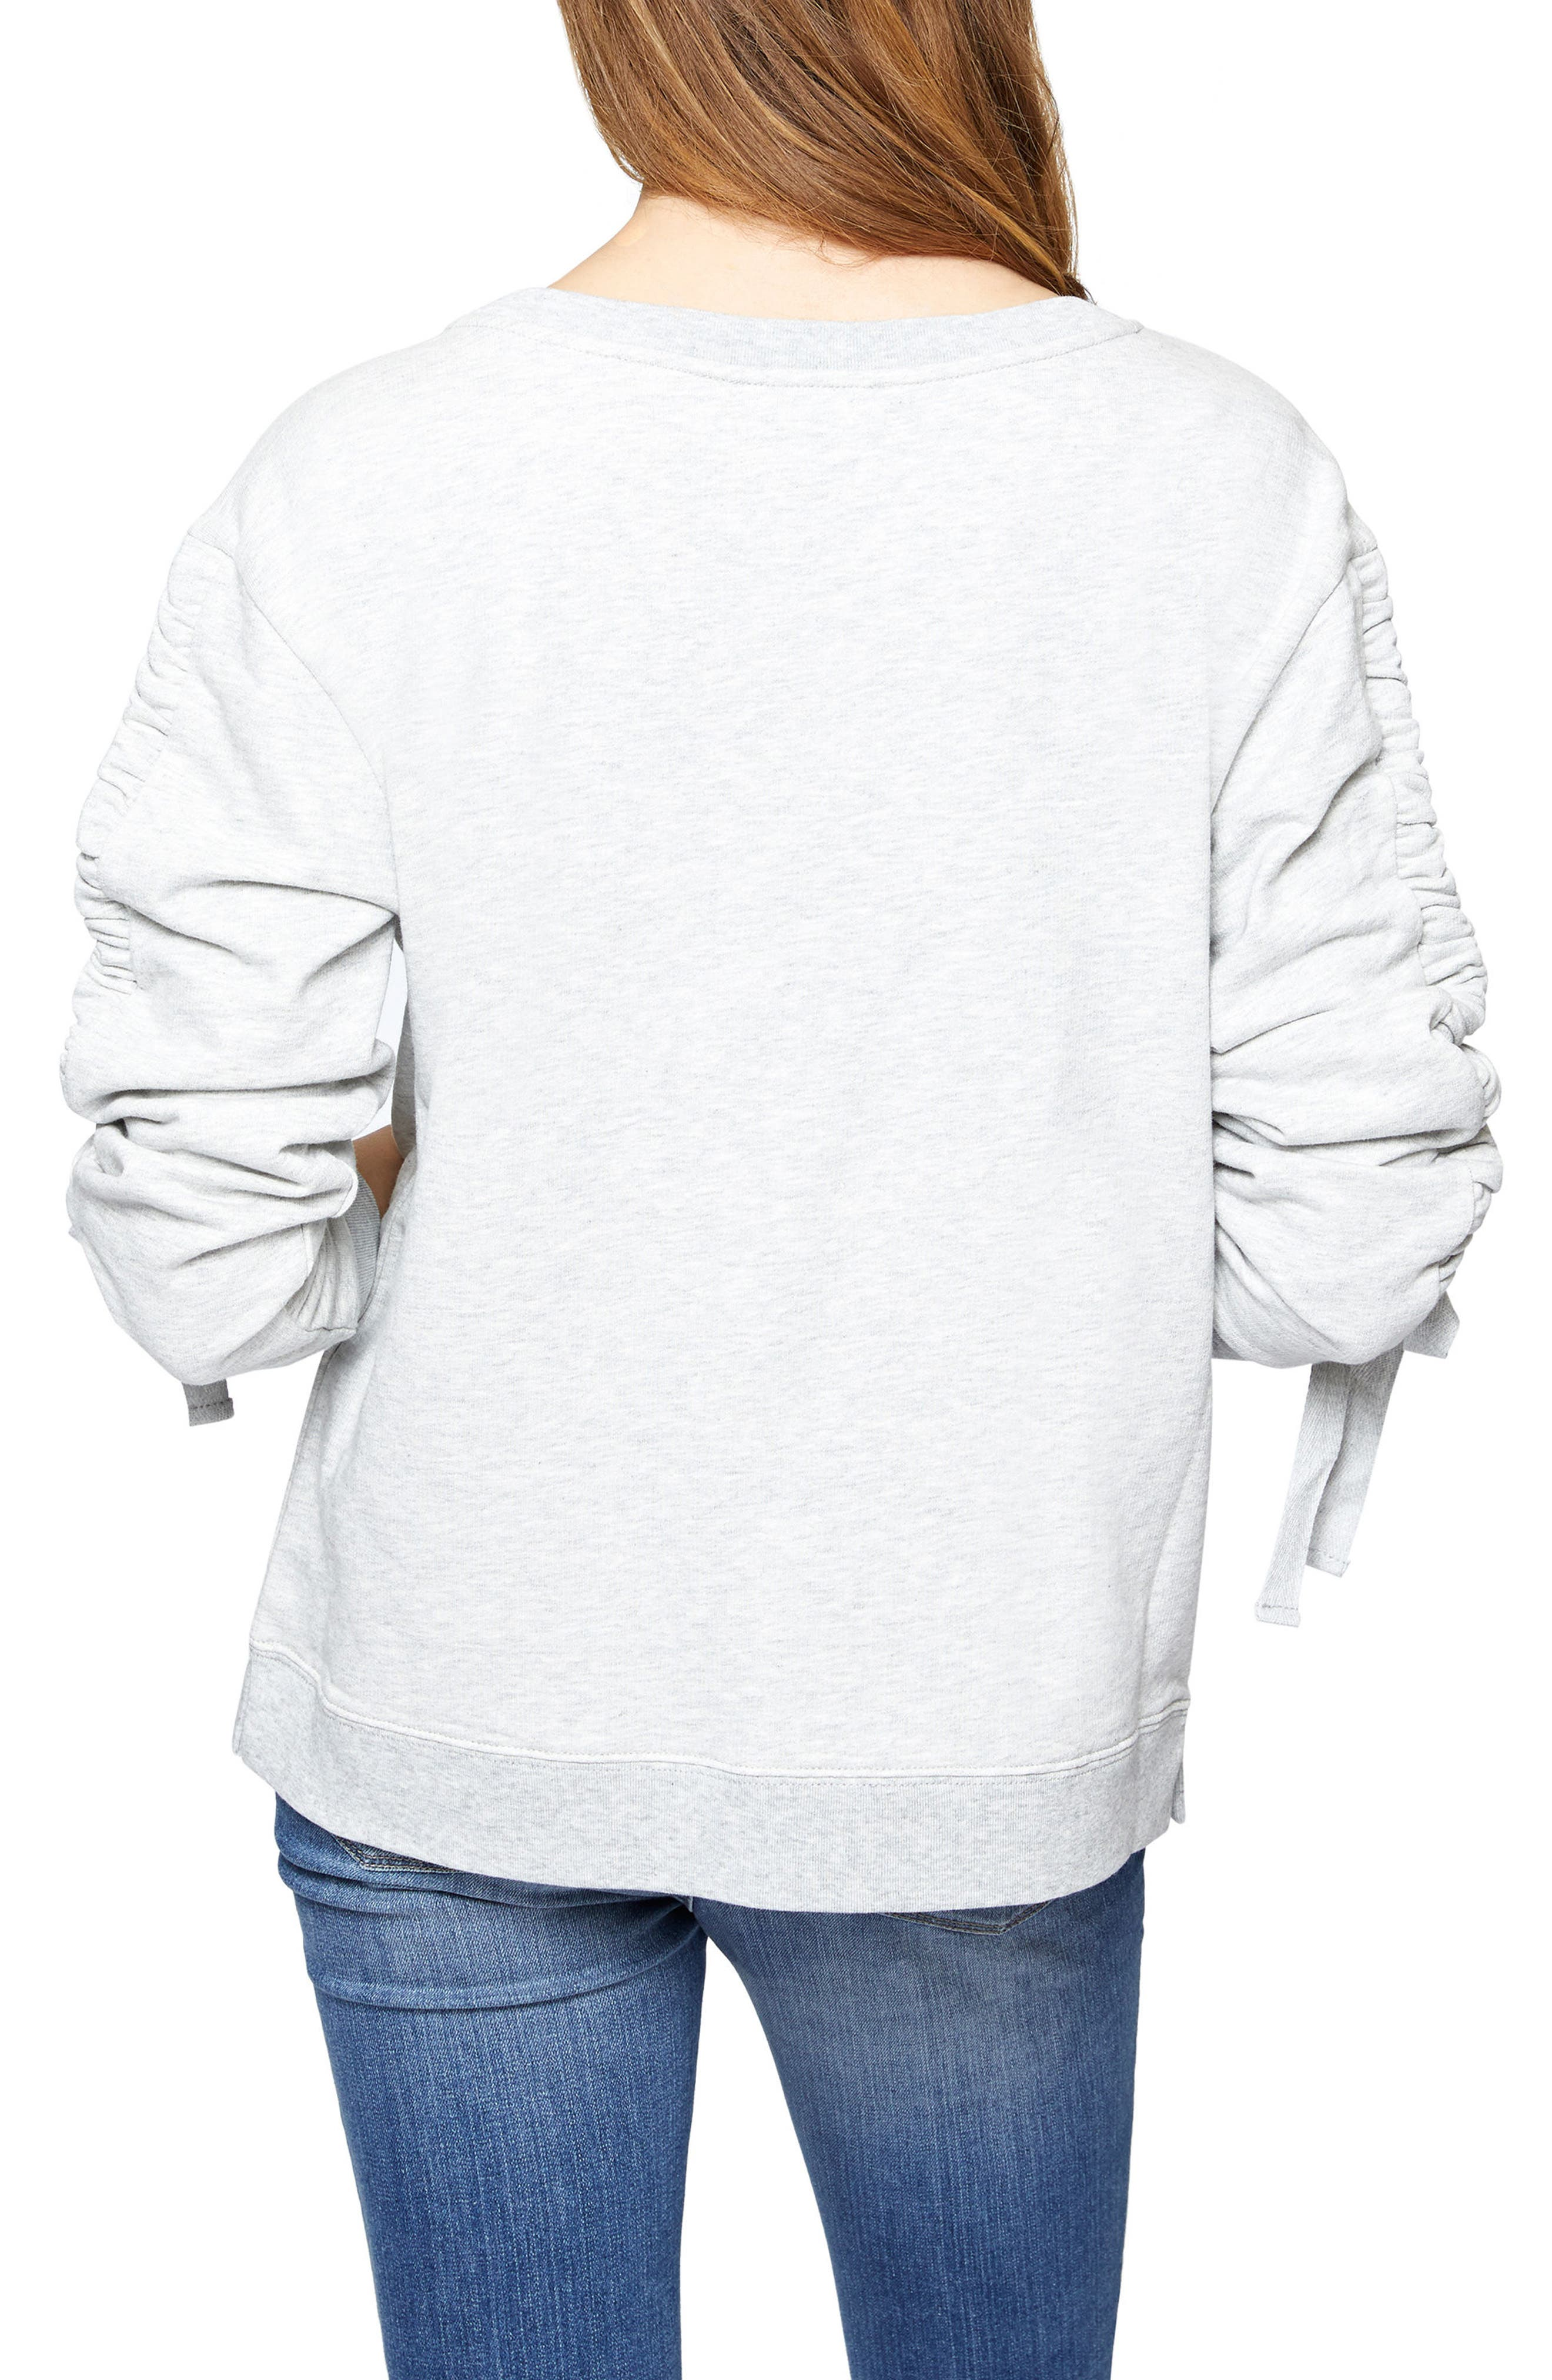 Alternate Image 2  - Sanctuary Camden Ruched Sweatshirt (Regular & Petite)